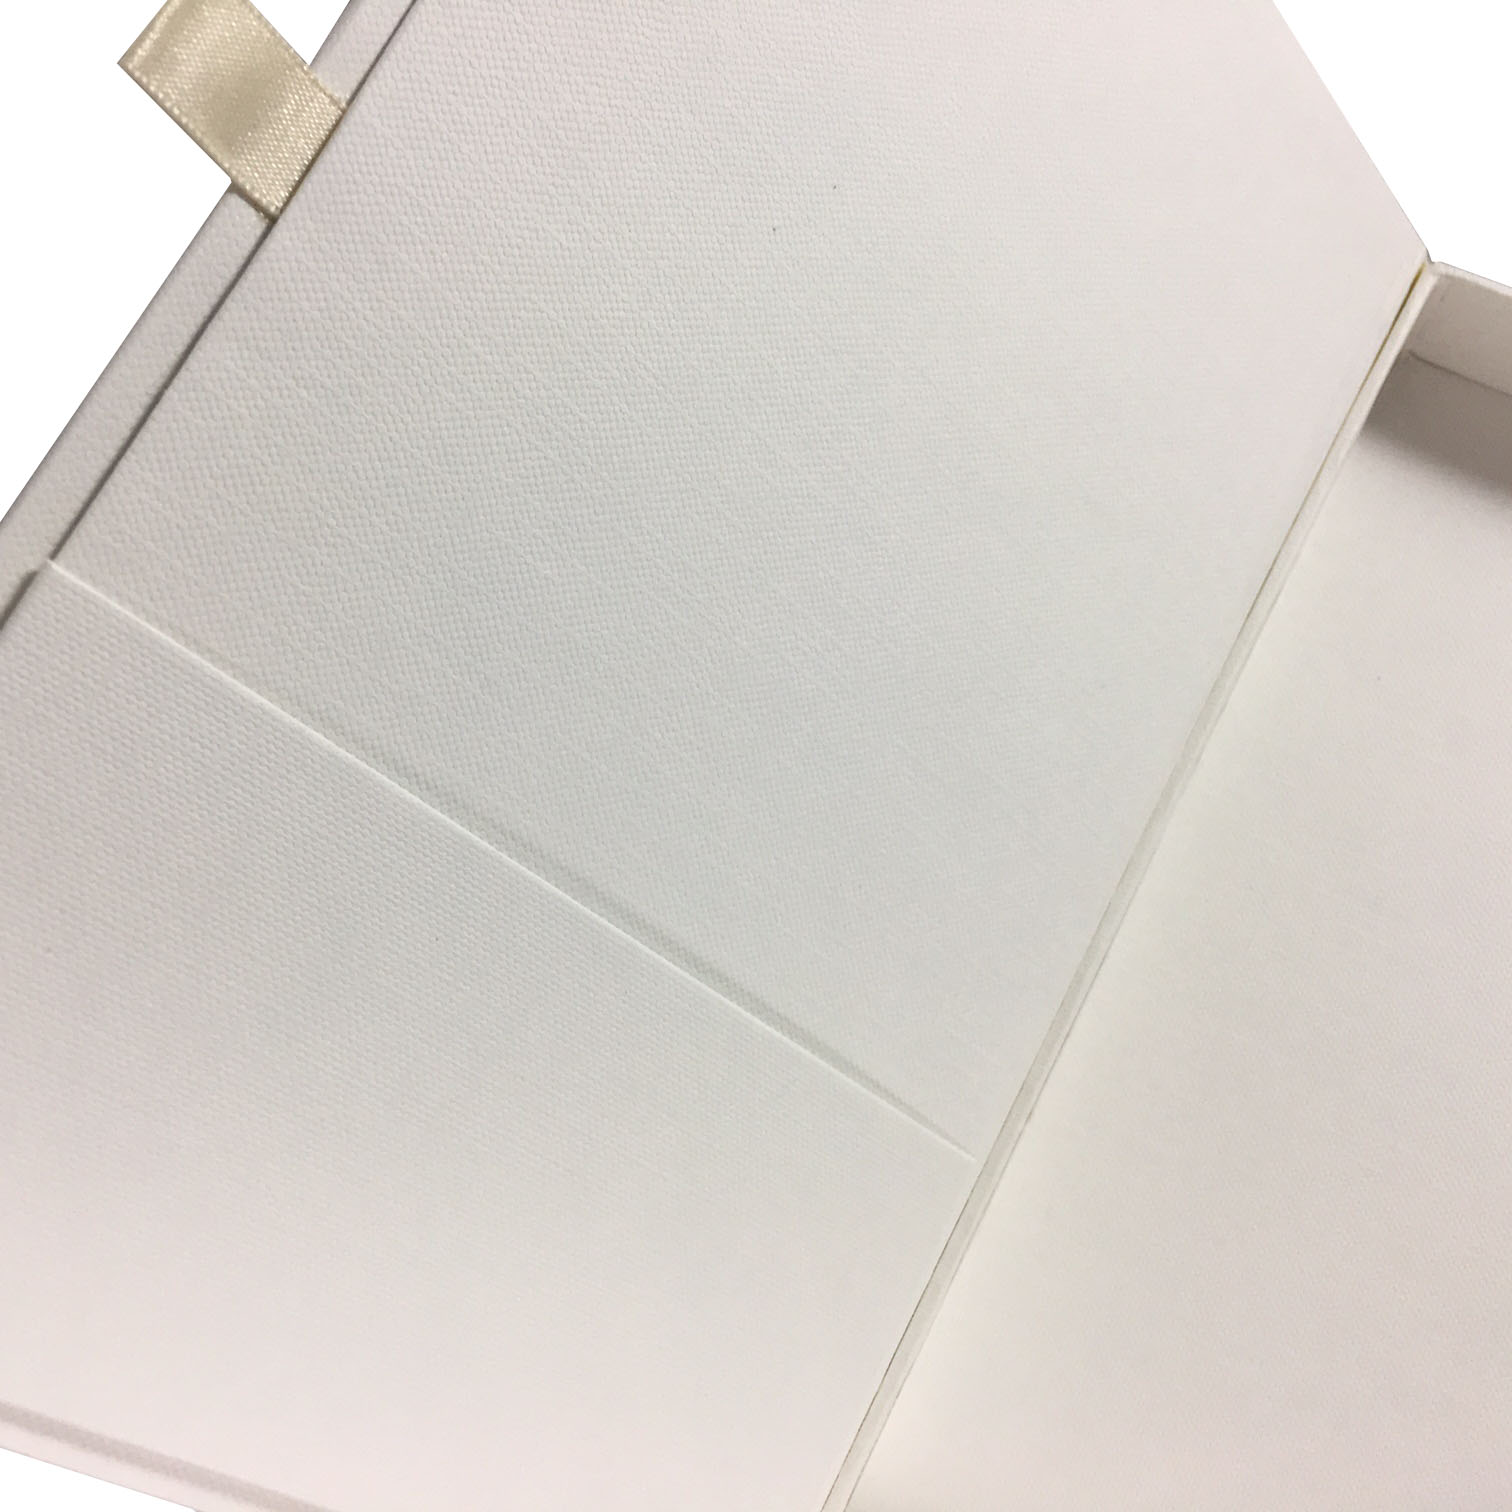 ivory packaging box for invitation cards